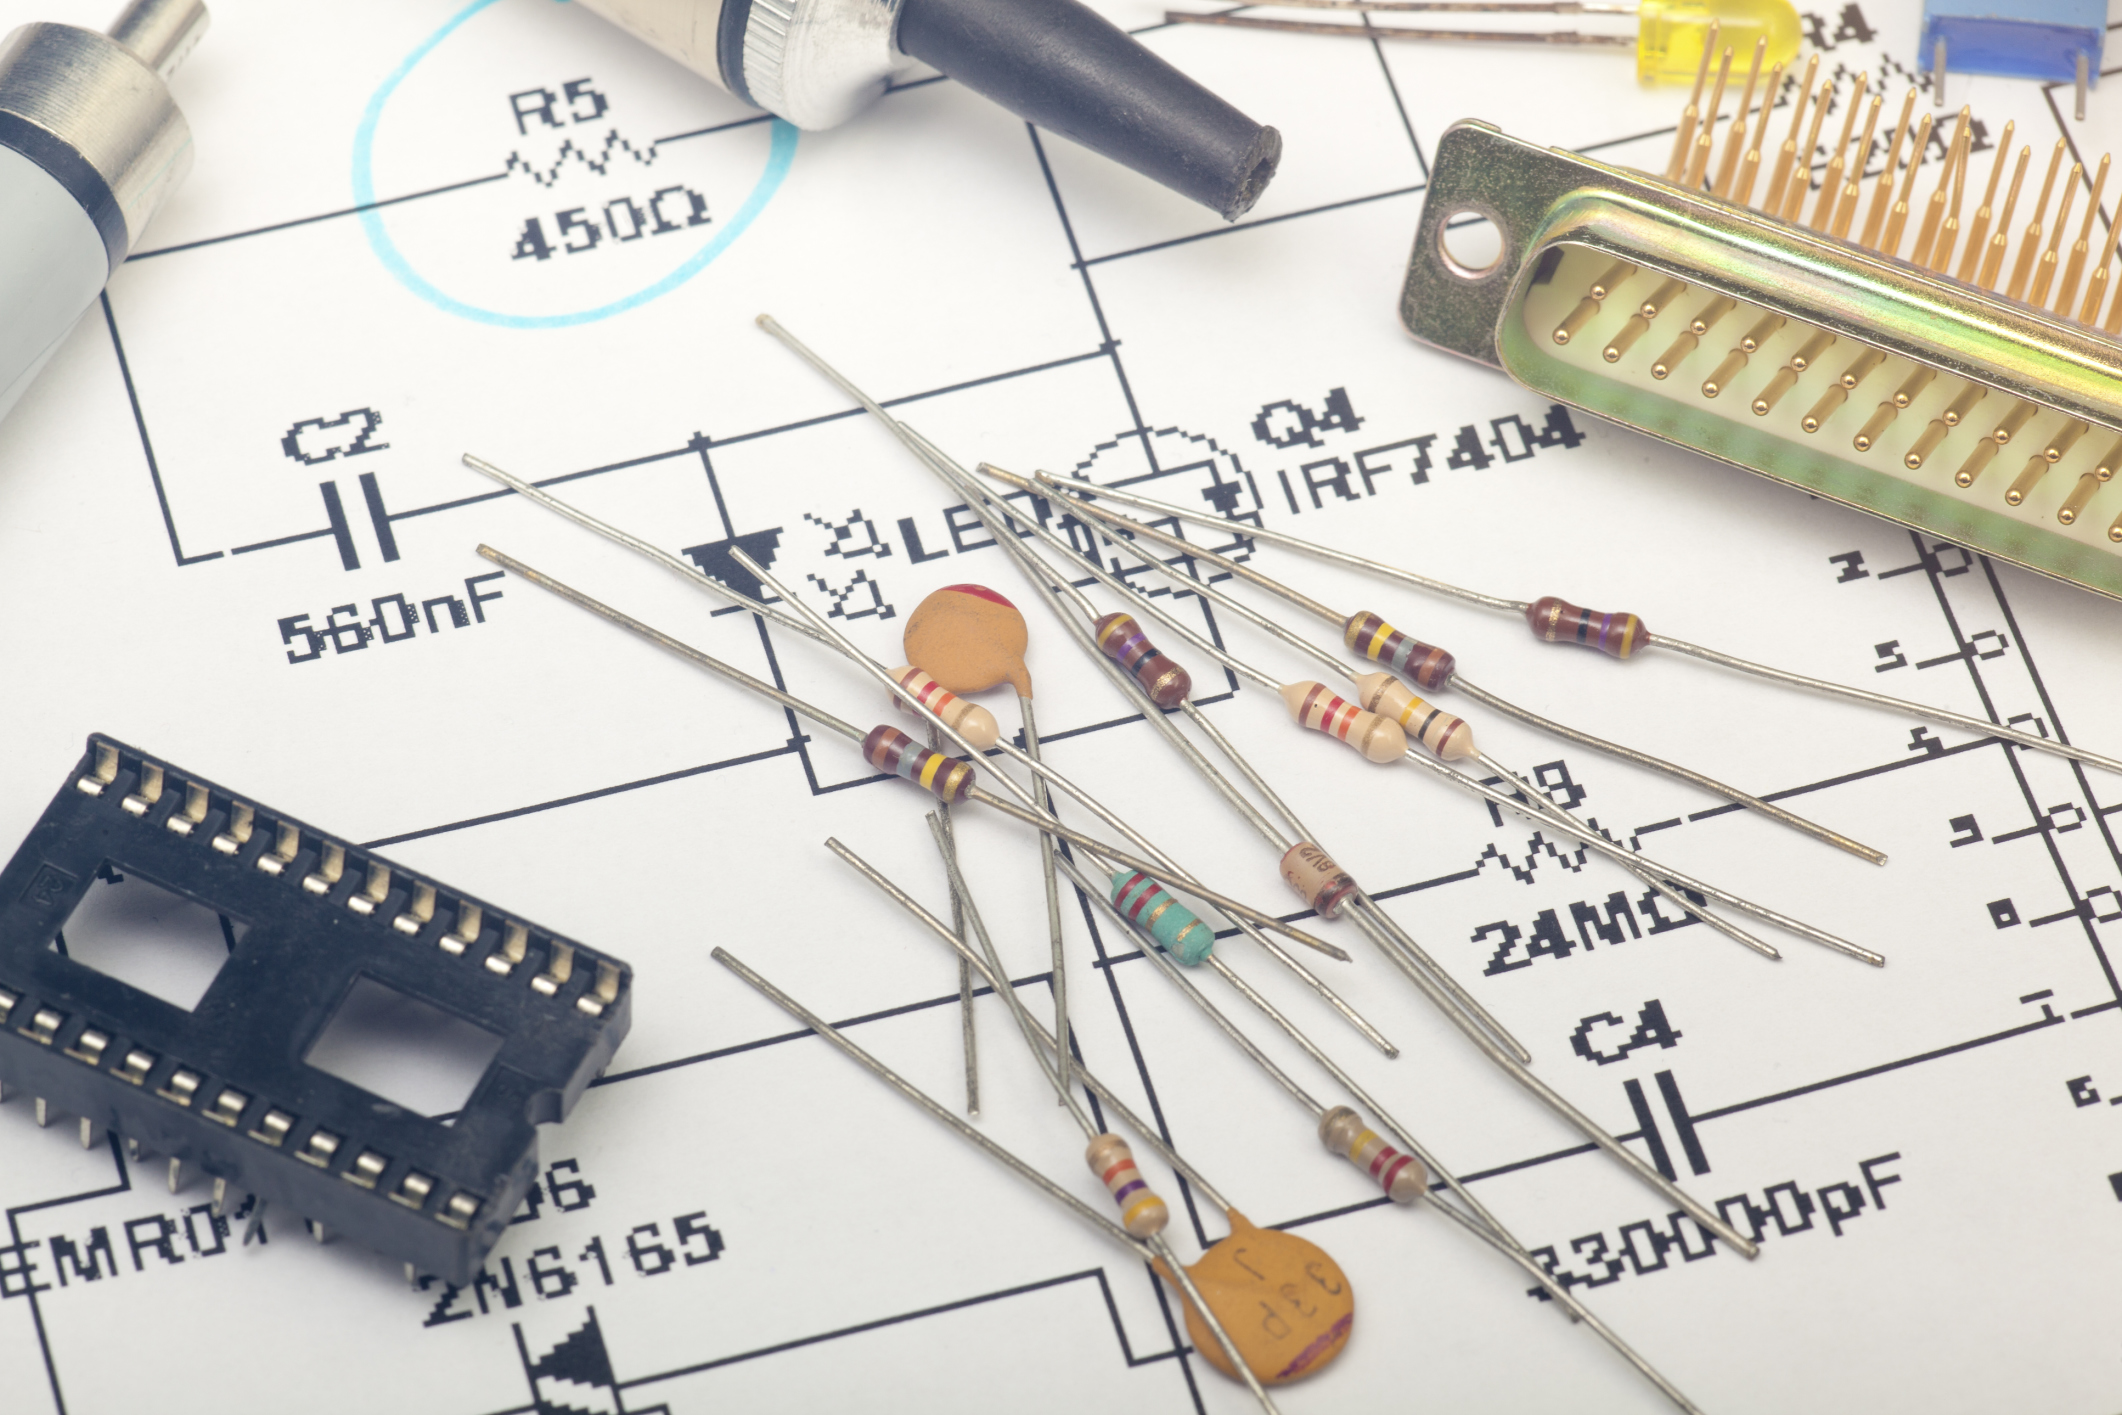 How To Reduce Voltage With Resistors Sciencing Equivalent Having One 4 Resistor In The Circuit